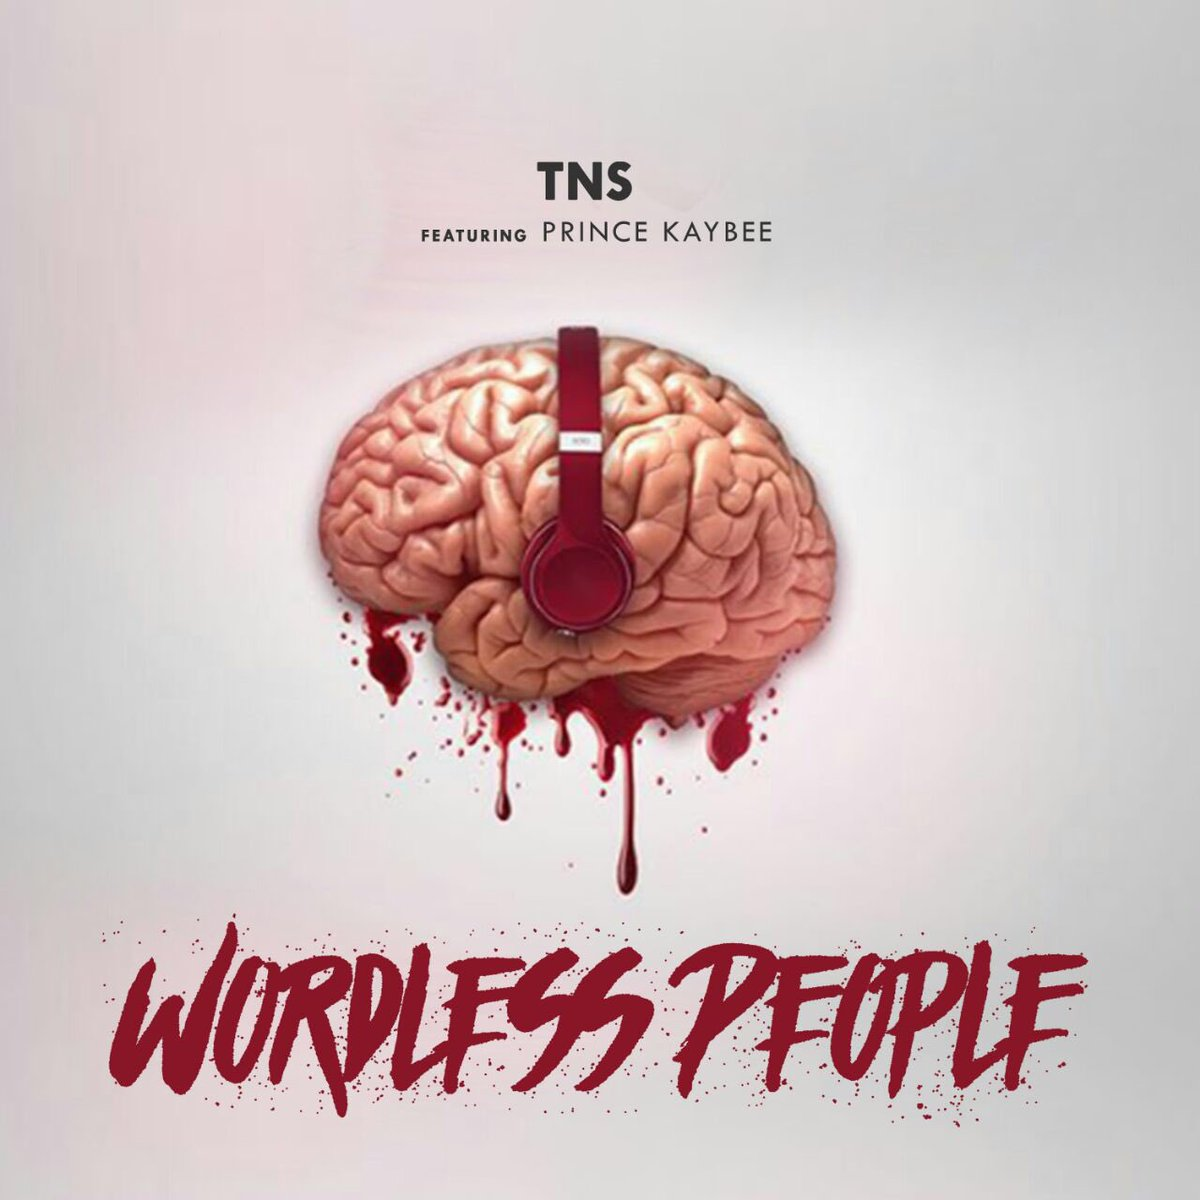 TNS - 'Wordless People' ft Prince Kaybee